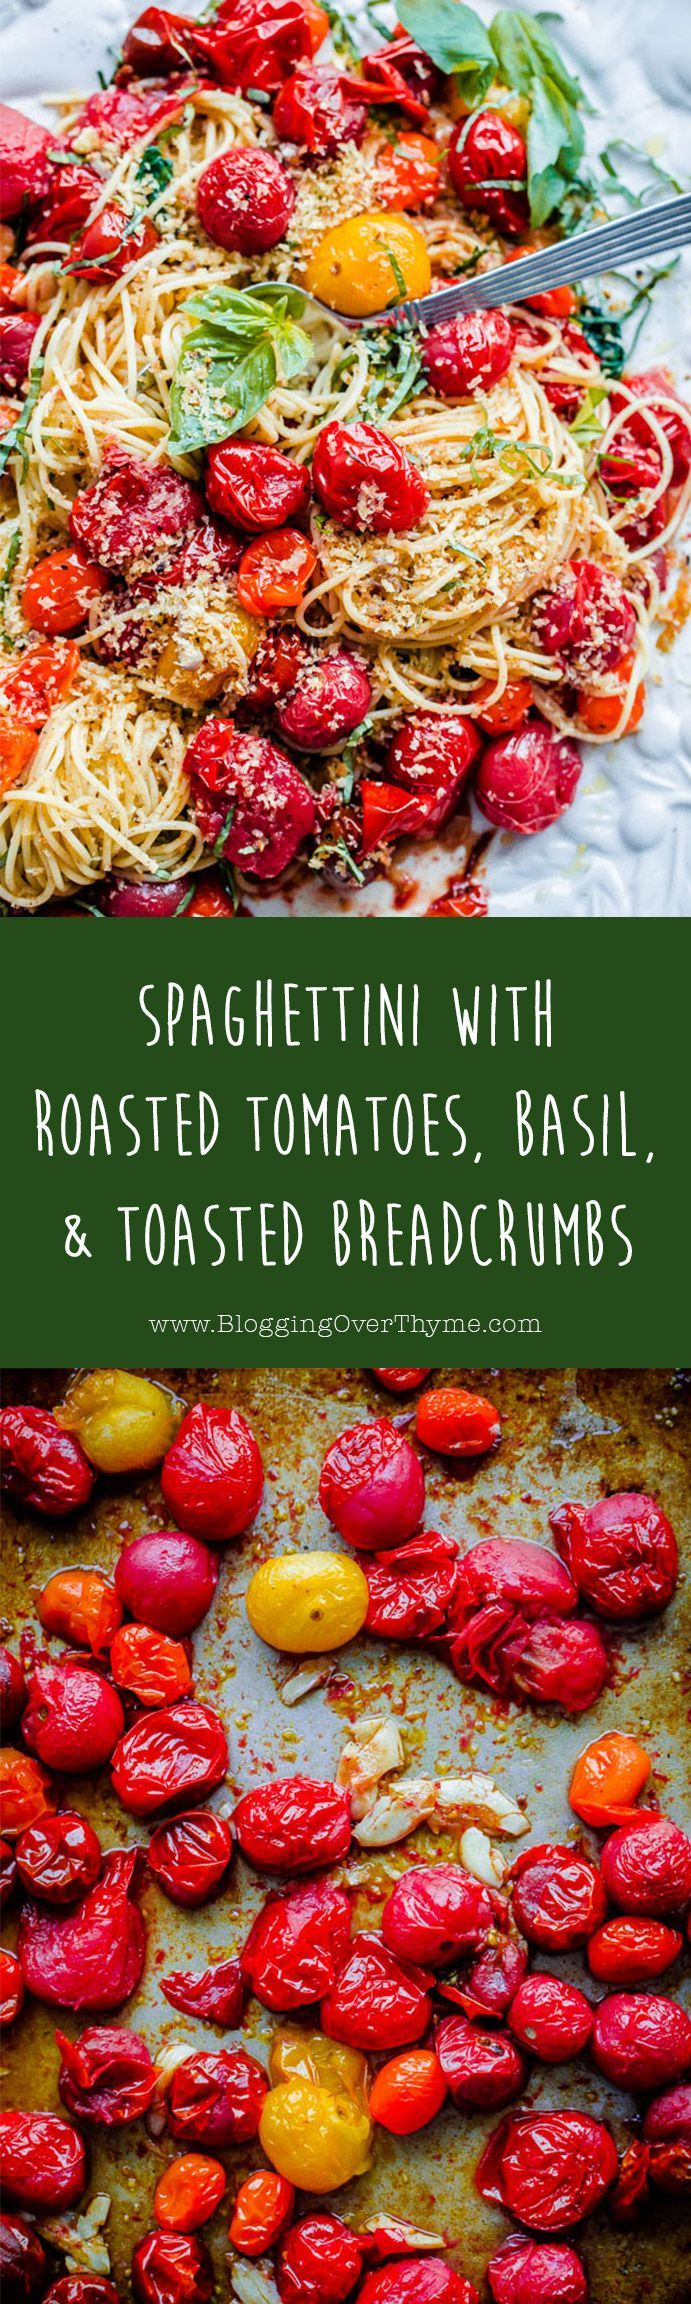 WANT --> Spaghettini with Roasted Tomatoes, Basil & Crispy Breadcrumbs #energy #pastalove